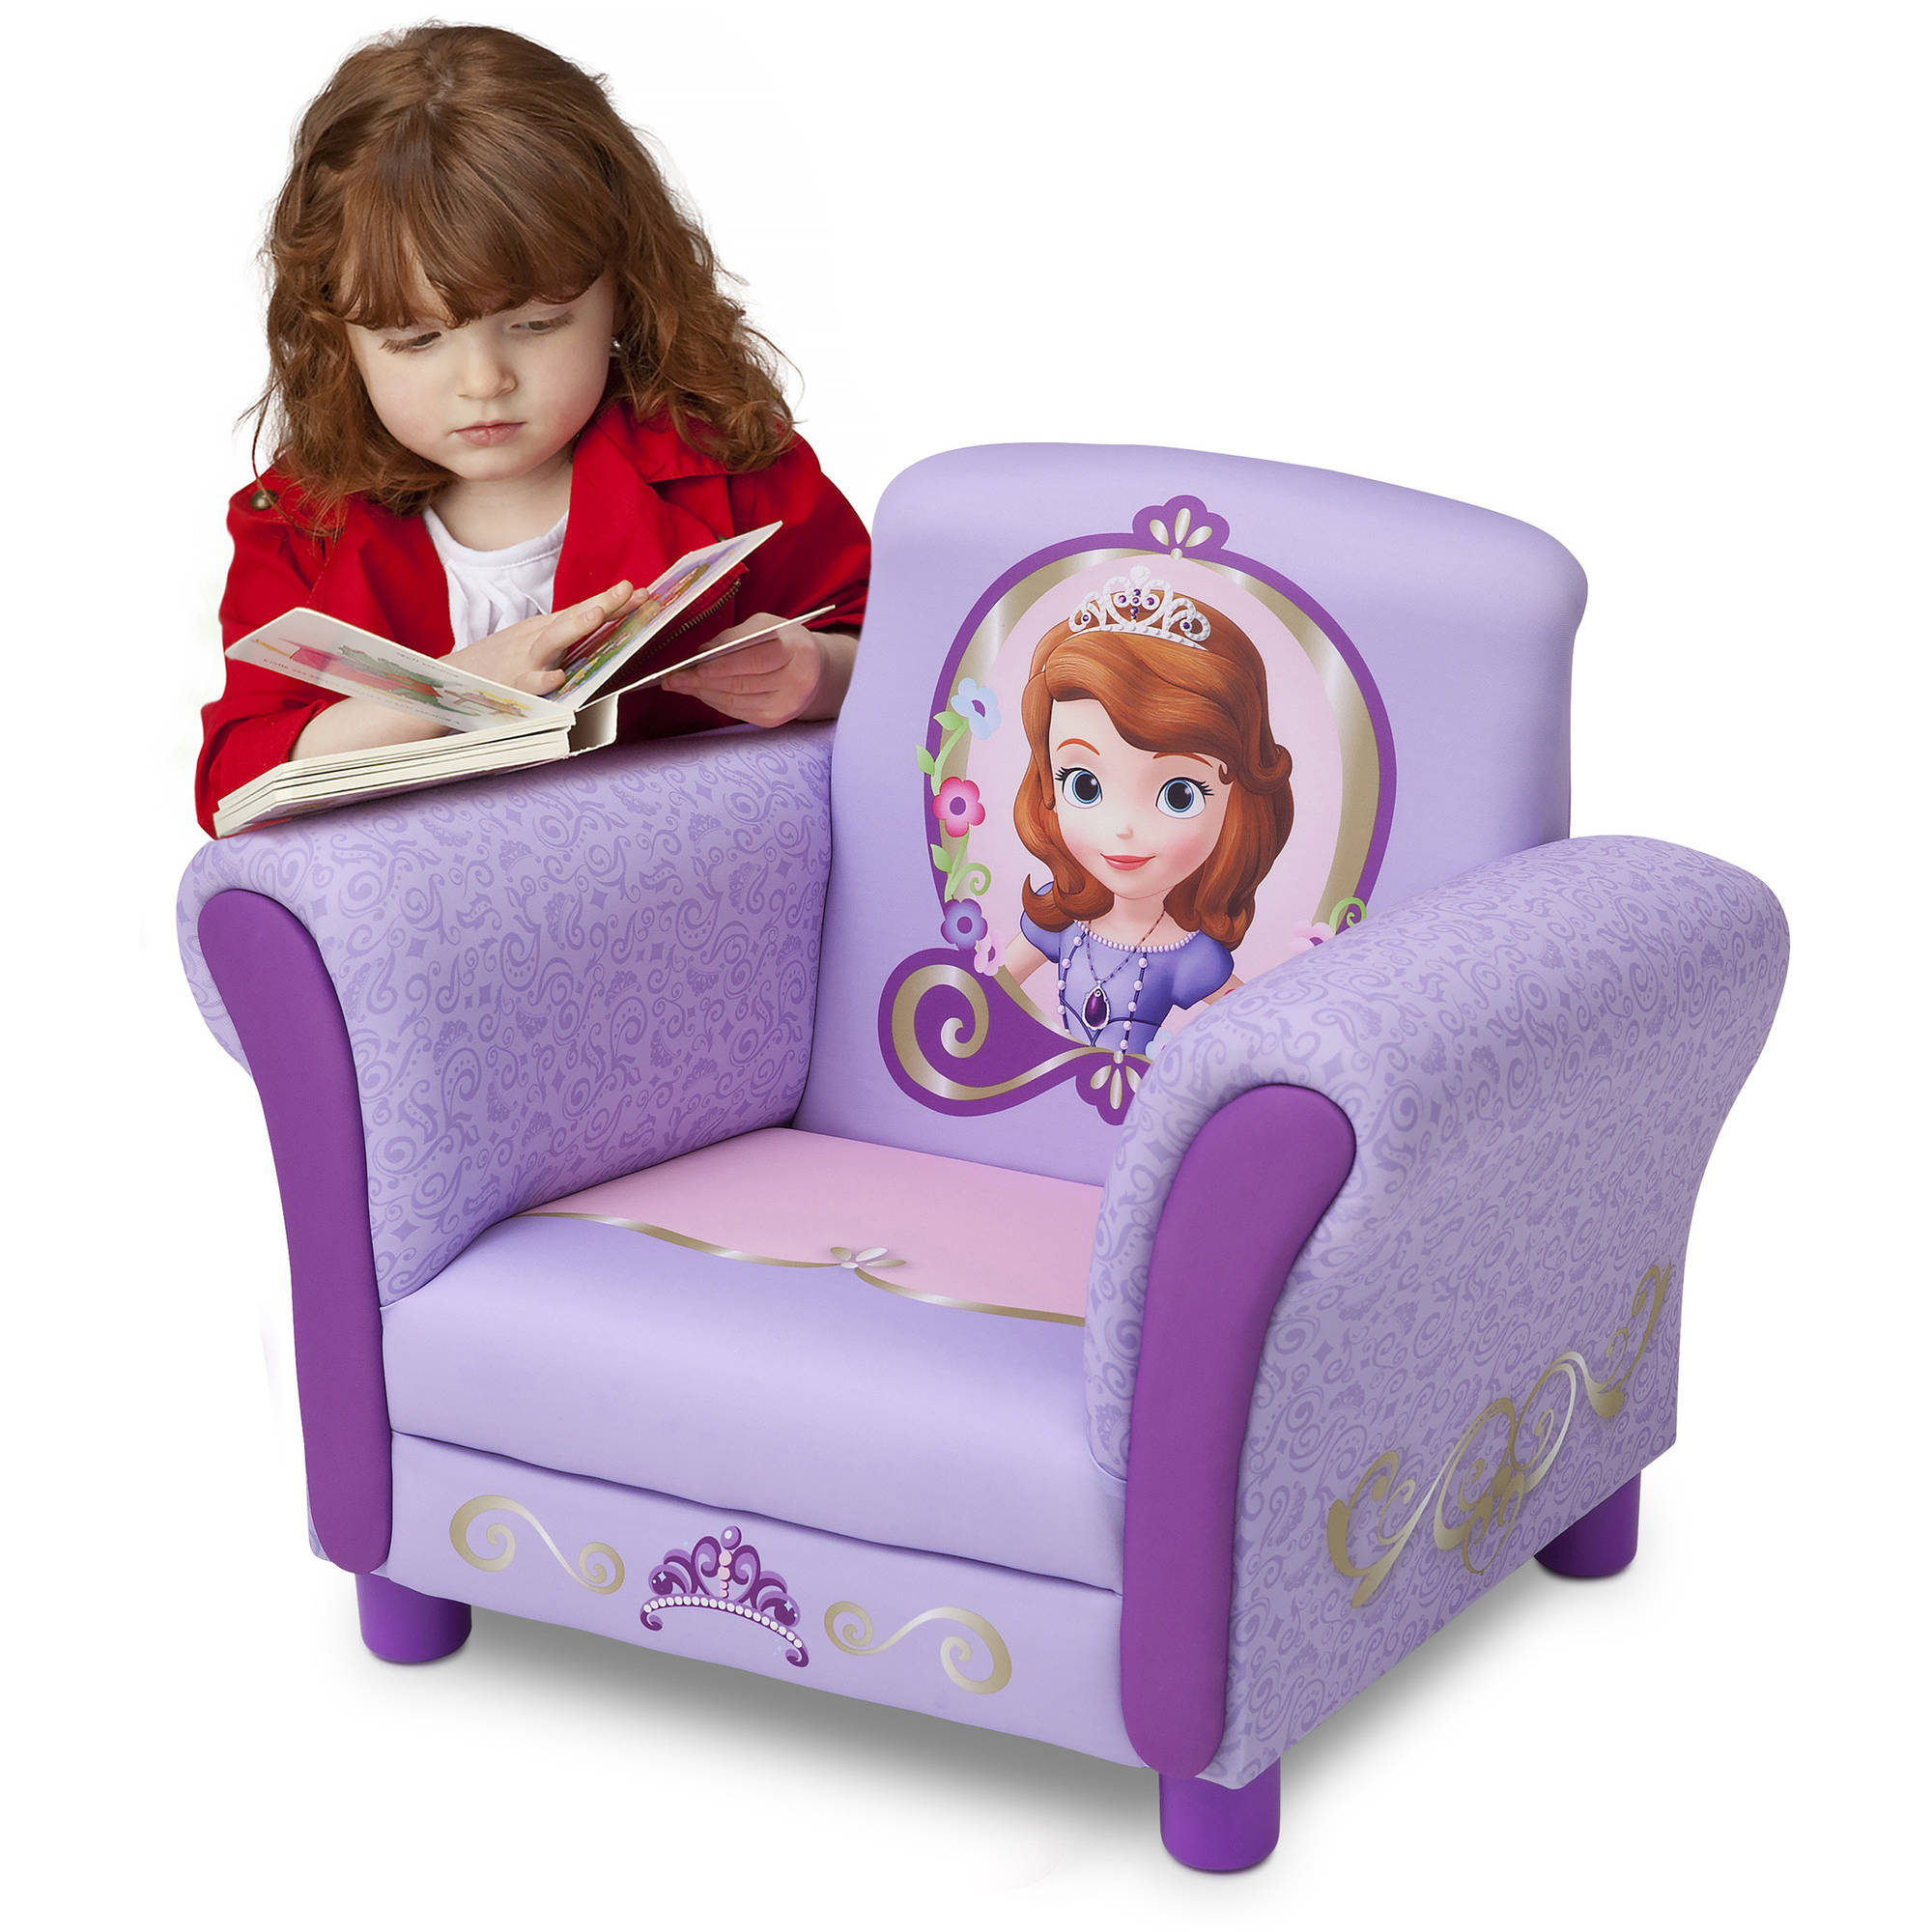 Delta Disney Sophia the First Upholstered Chair, Lavender